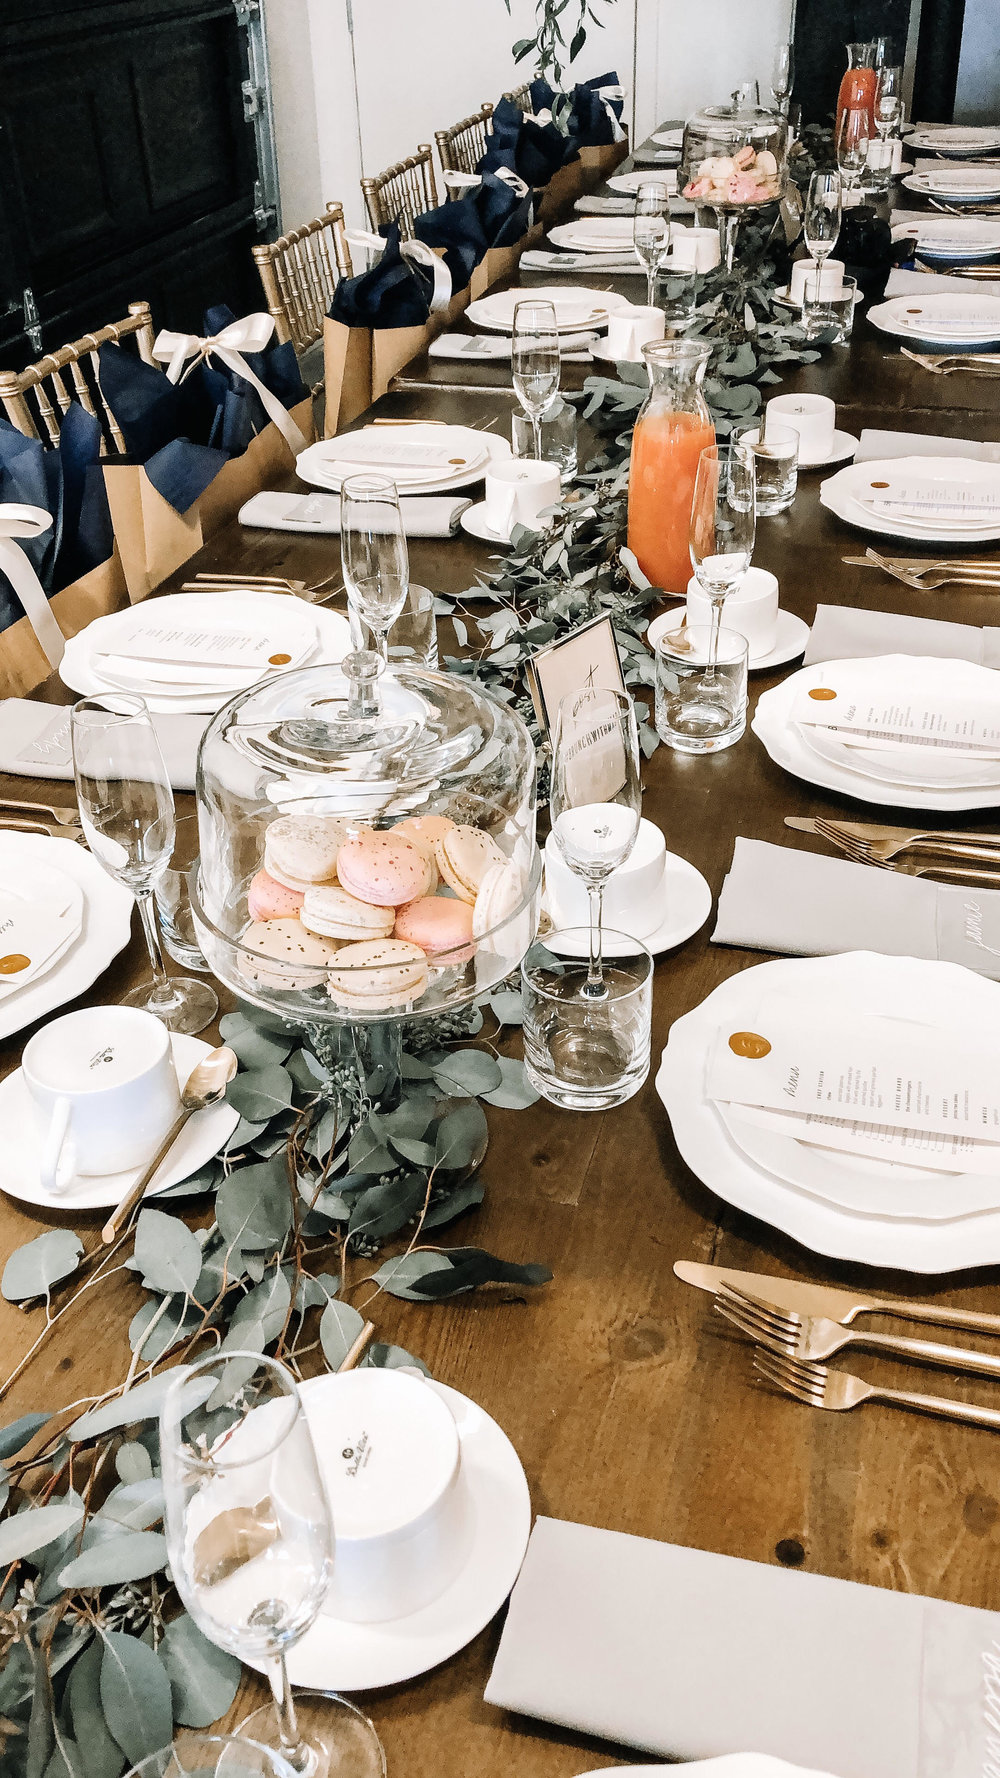 Tables/Chairs/Flatwear - CT Rentals | Macaroons - Jenna Rae Cakes | Menu - Robin Egg Blue Designs